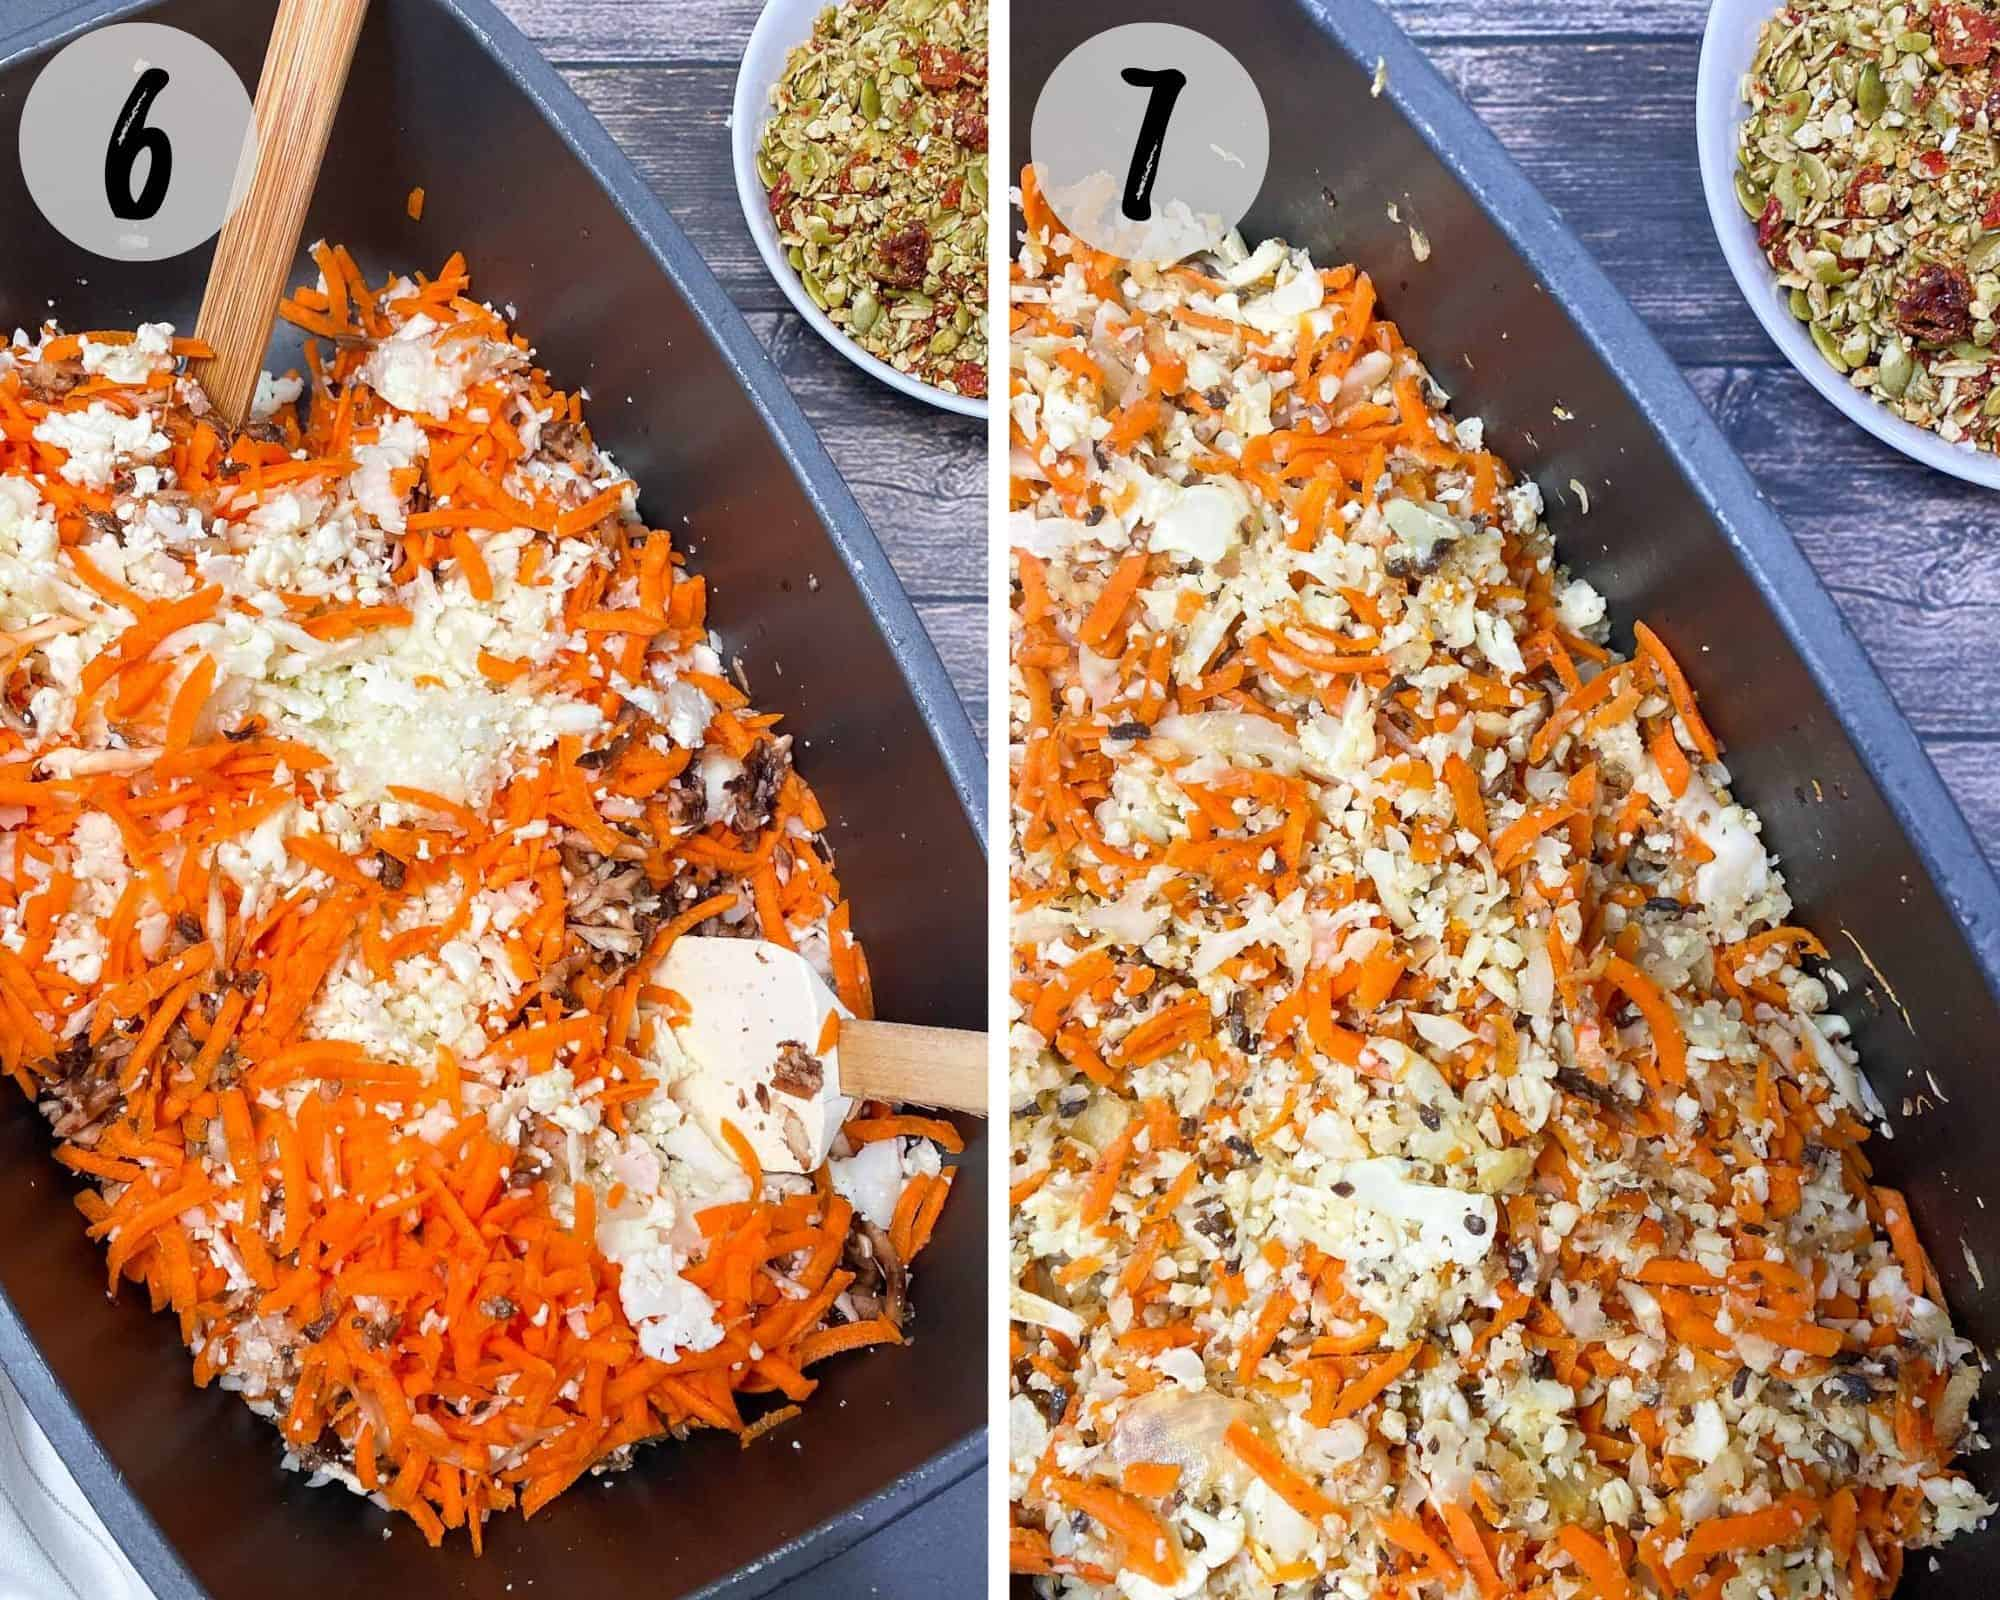 deep skillet filled with shredded carrot, cauliflower, mushrooms and onion